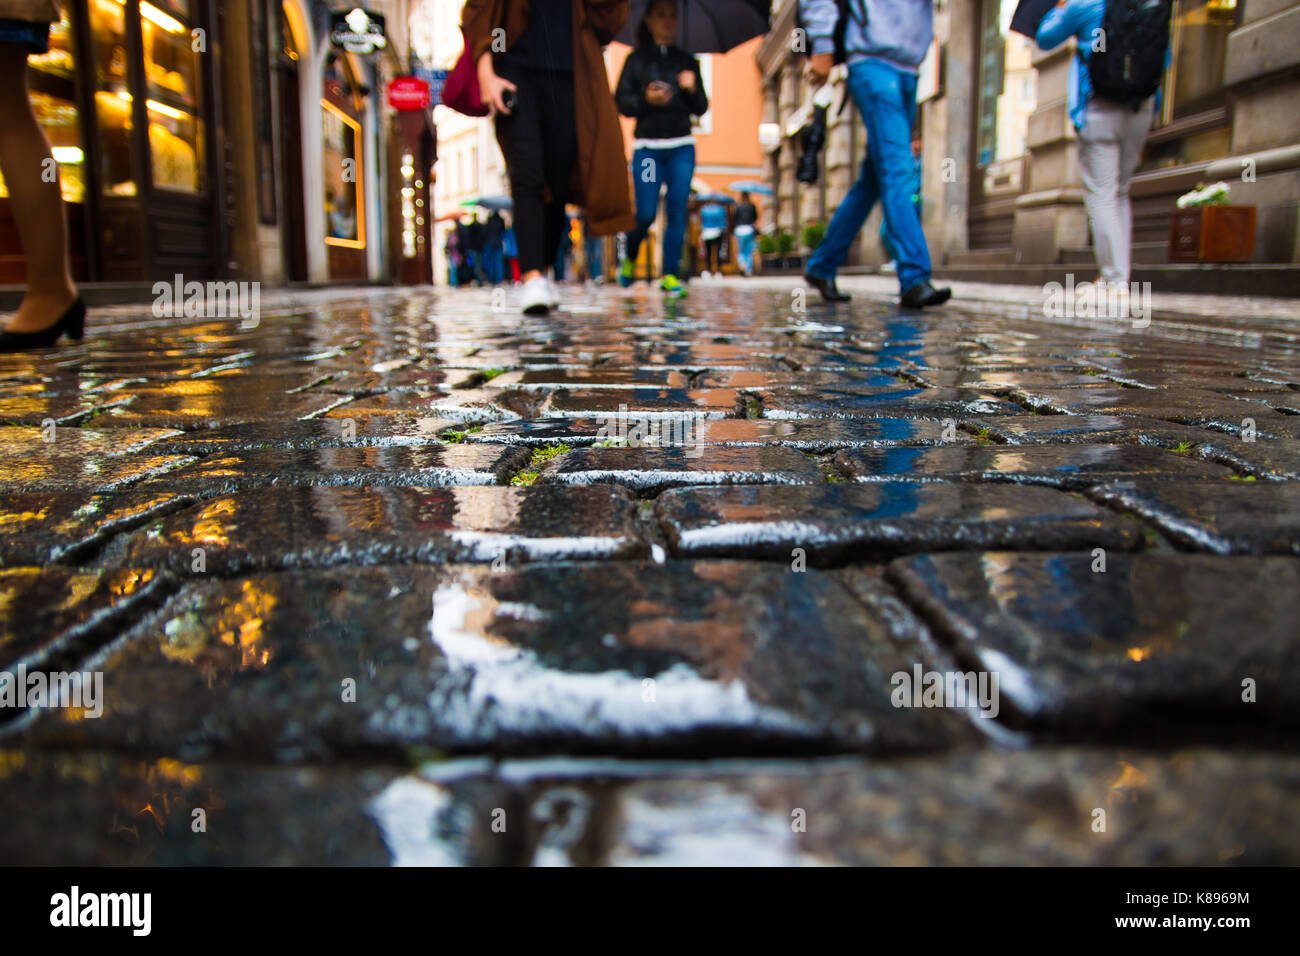 People walking on wet paving stones in rainy day in old town of Prague Stock Photo